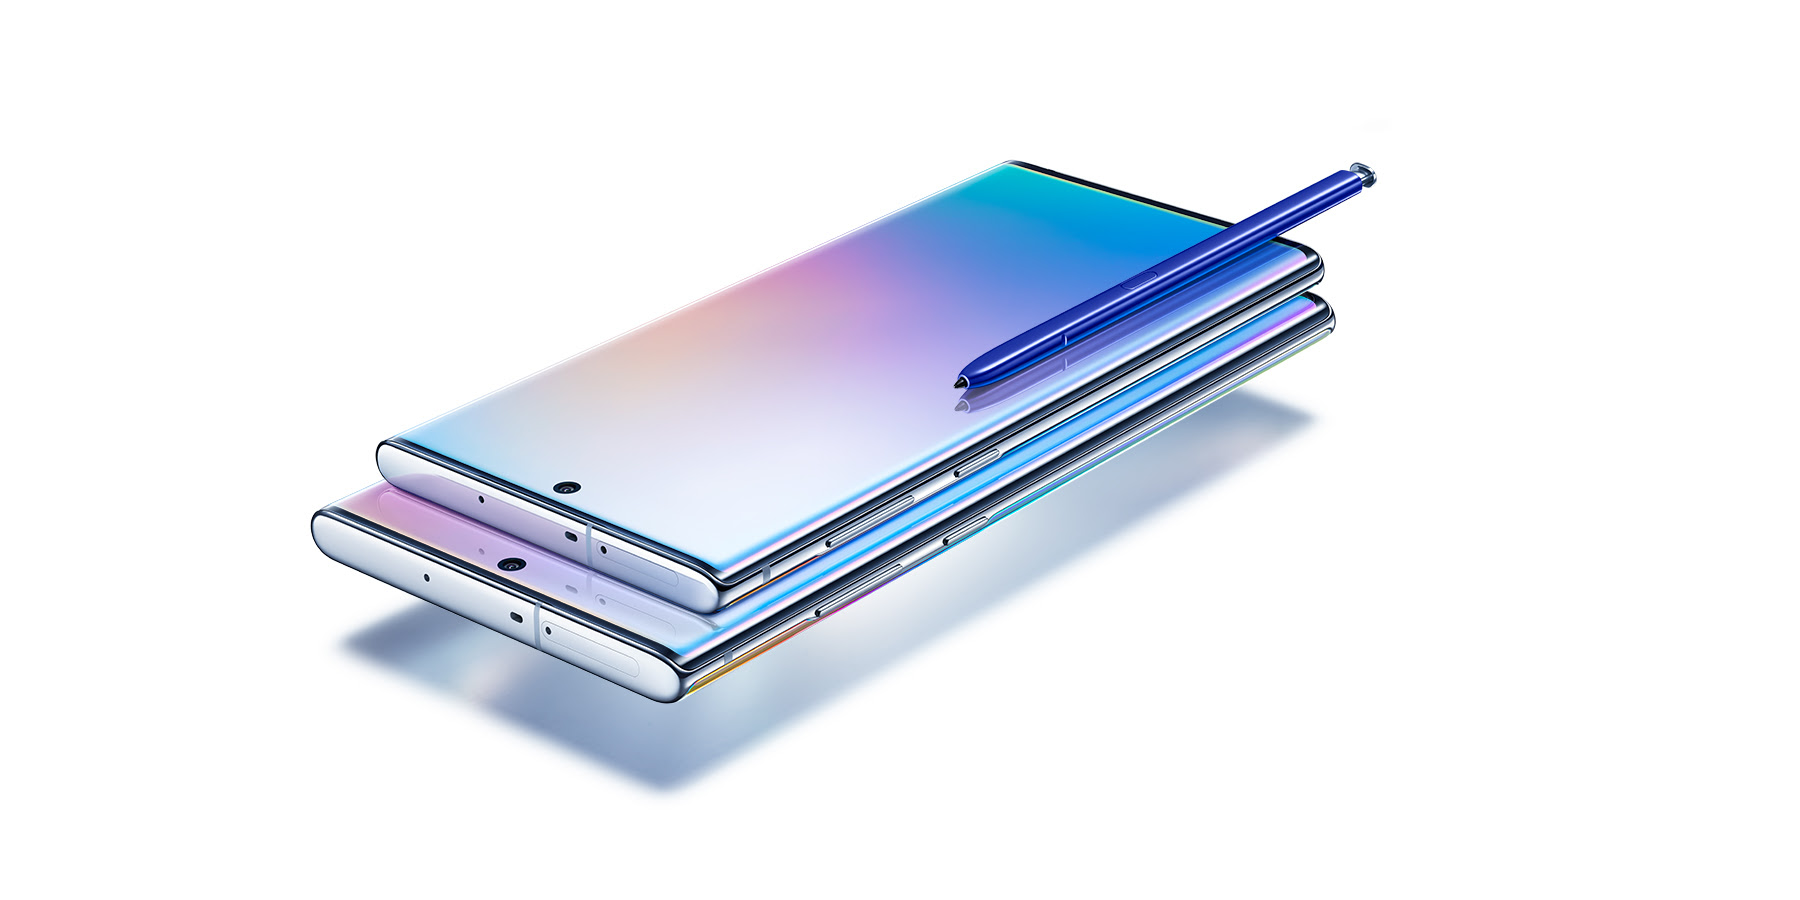 Best Samsung Galaxy Note 10,10 Plus and 10 Plus 5G prices and plans in Australia